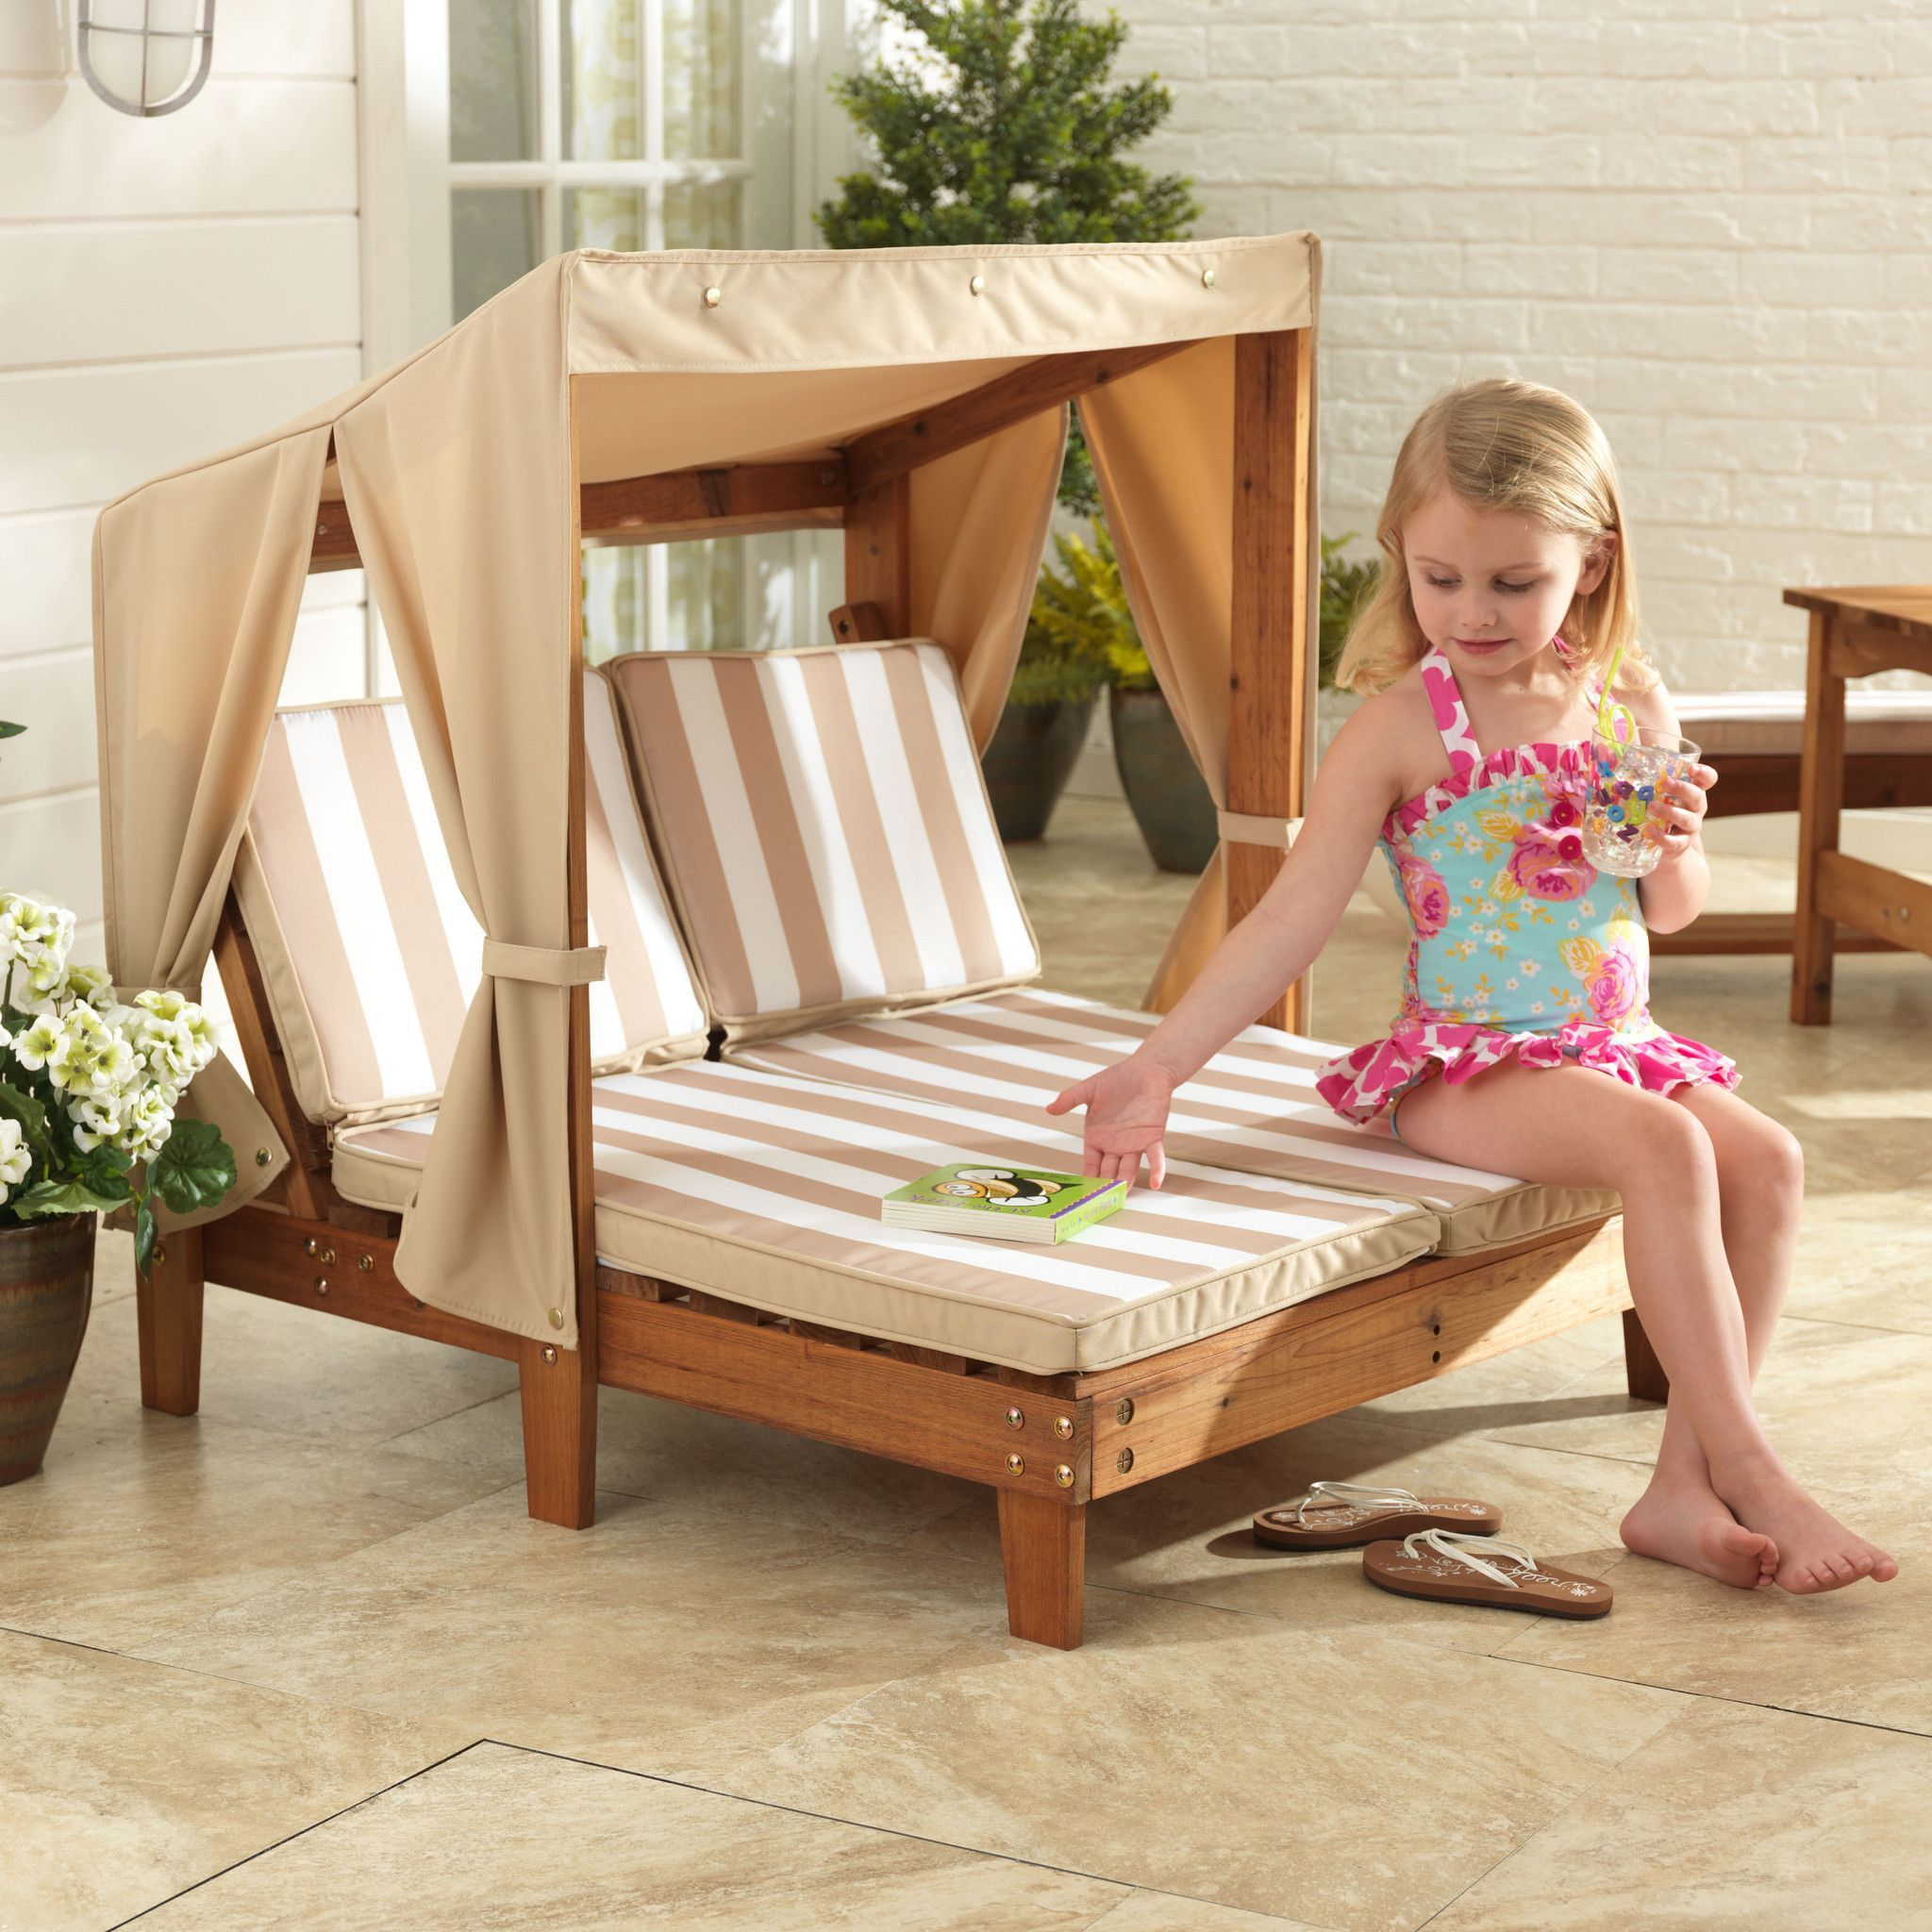 This Chaise Lounger Is Designed With Kid Friendly